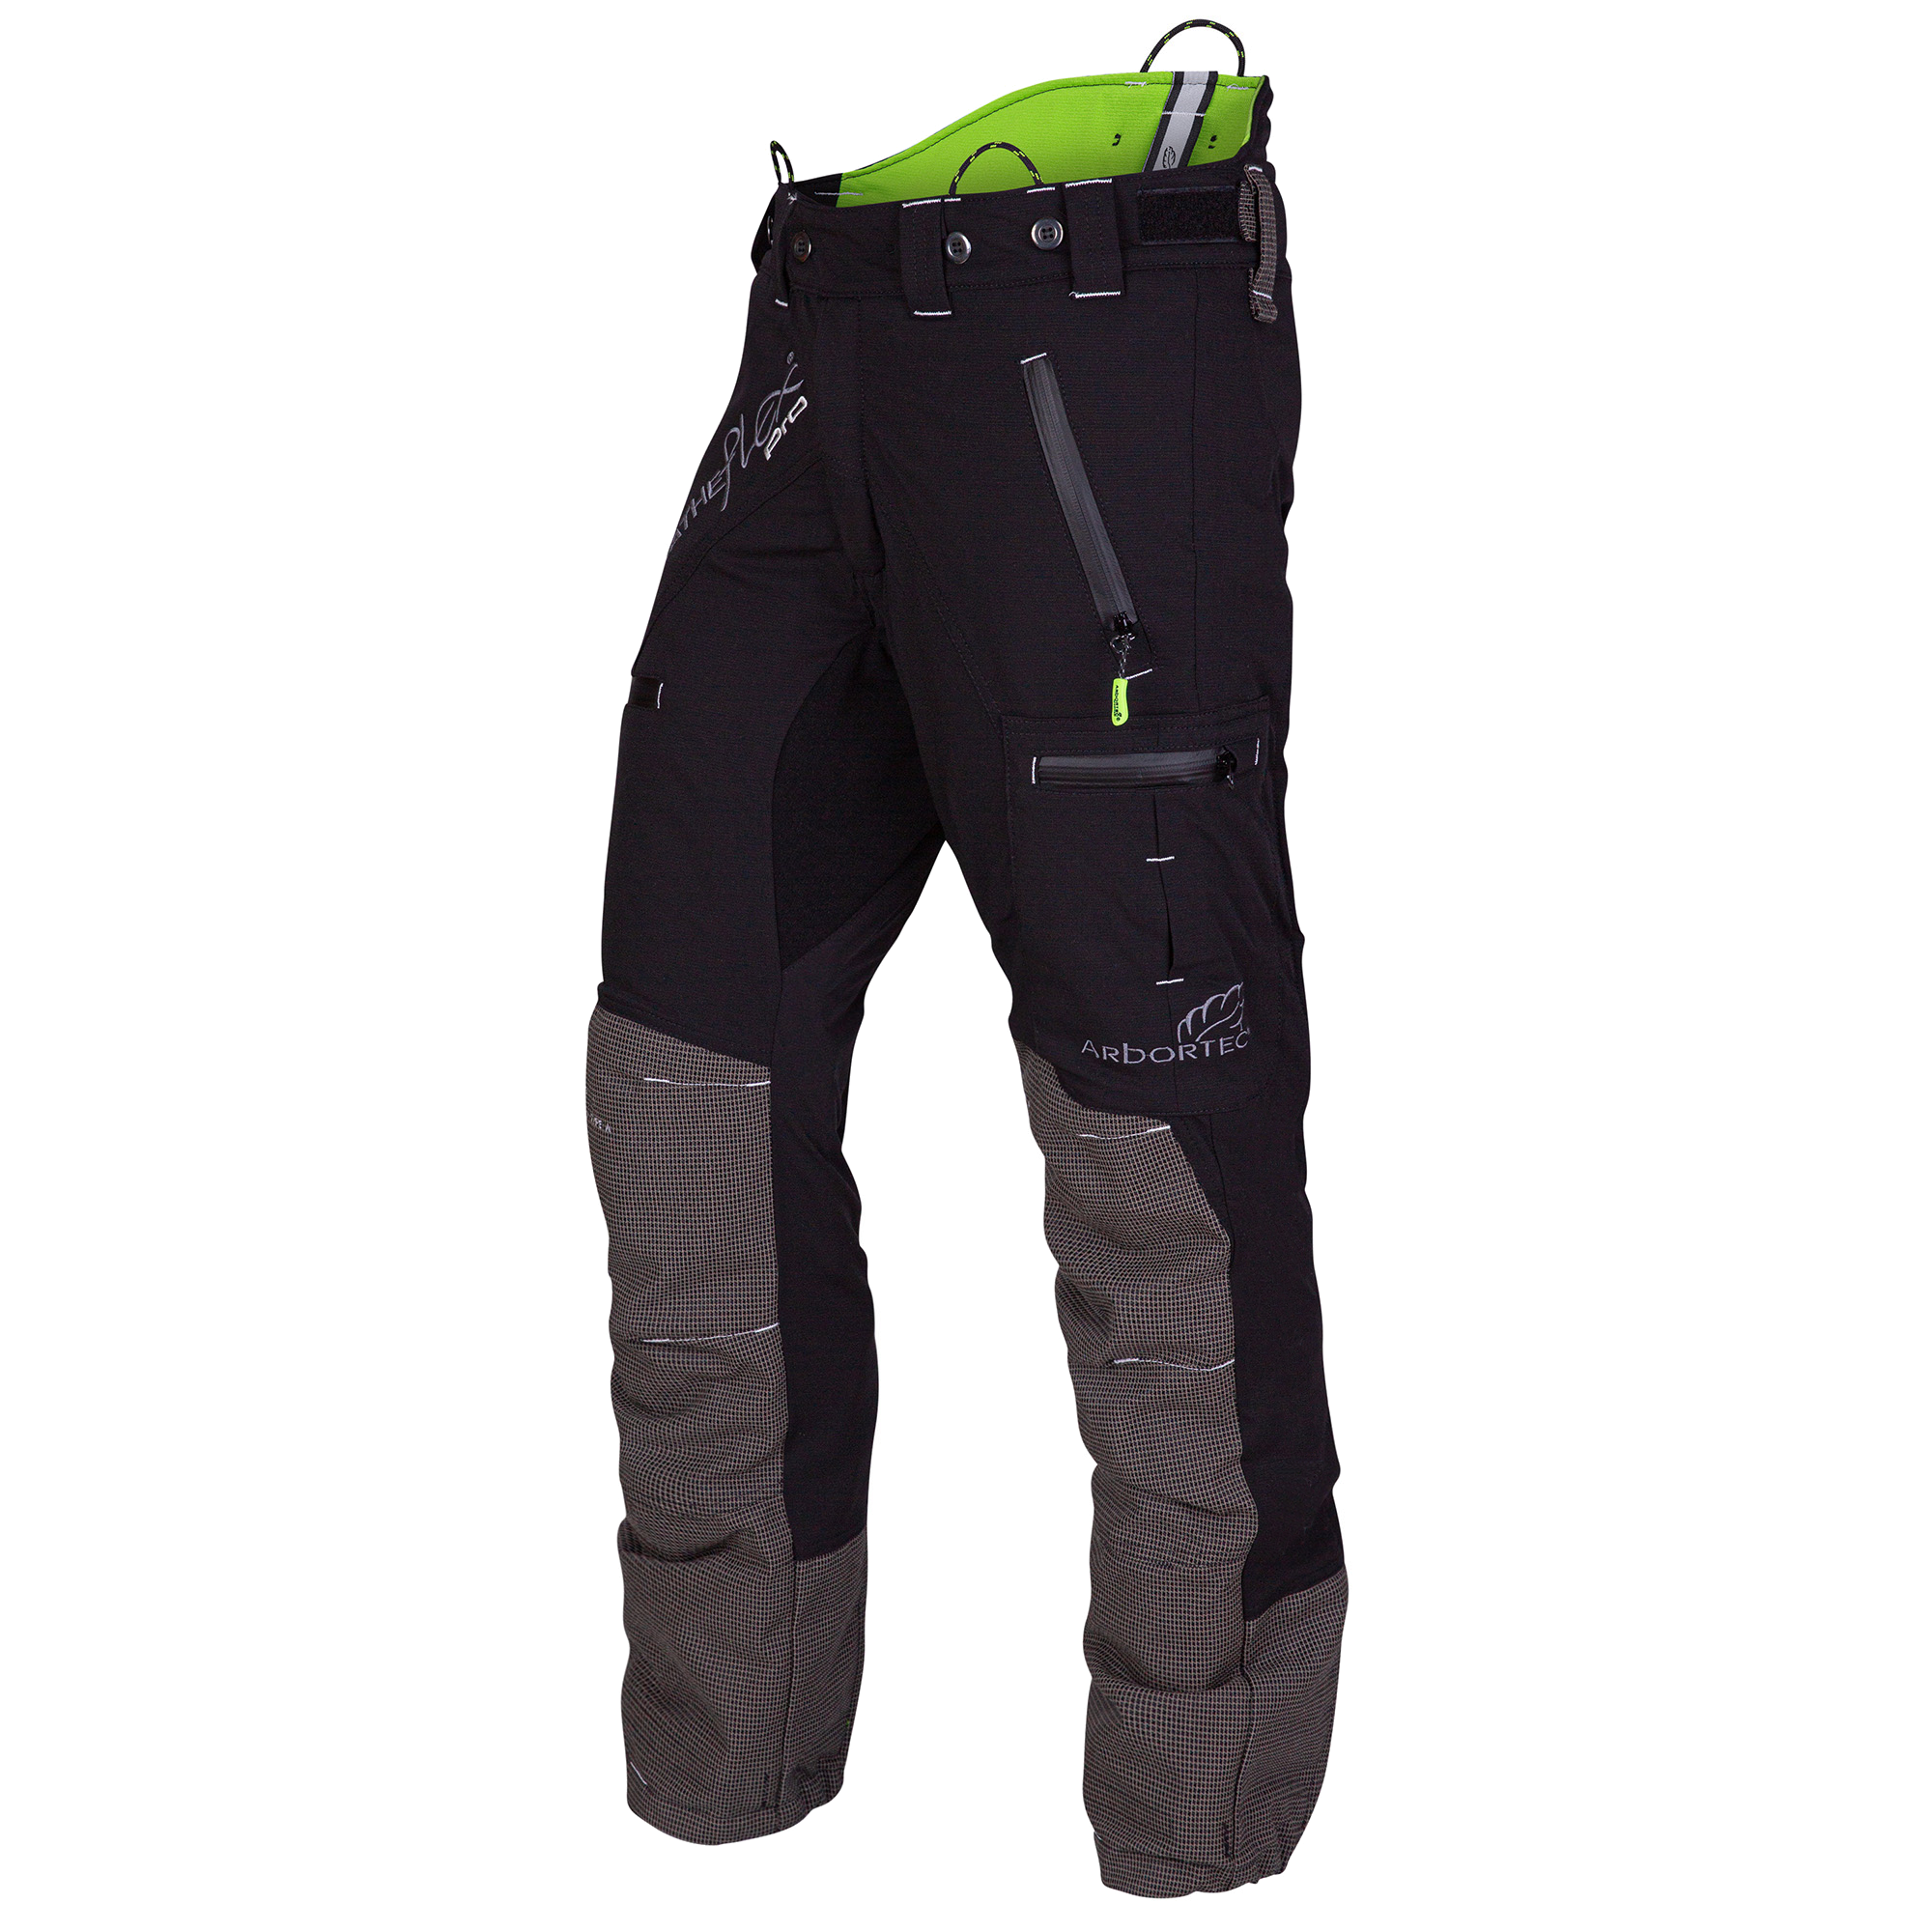 AT4060 Breatheflex Pro Type A Class 1 Chainsaw Trousers - Black